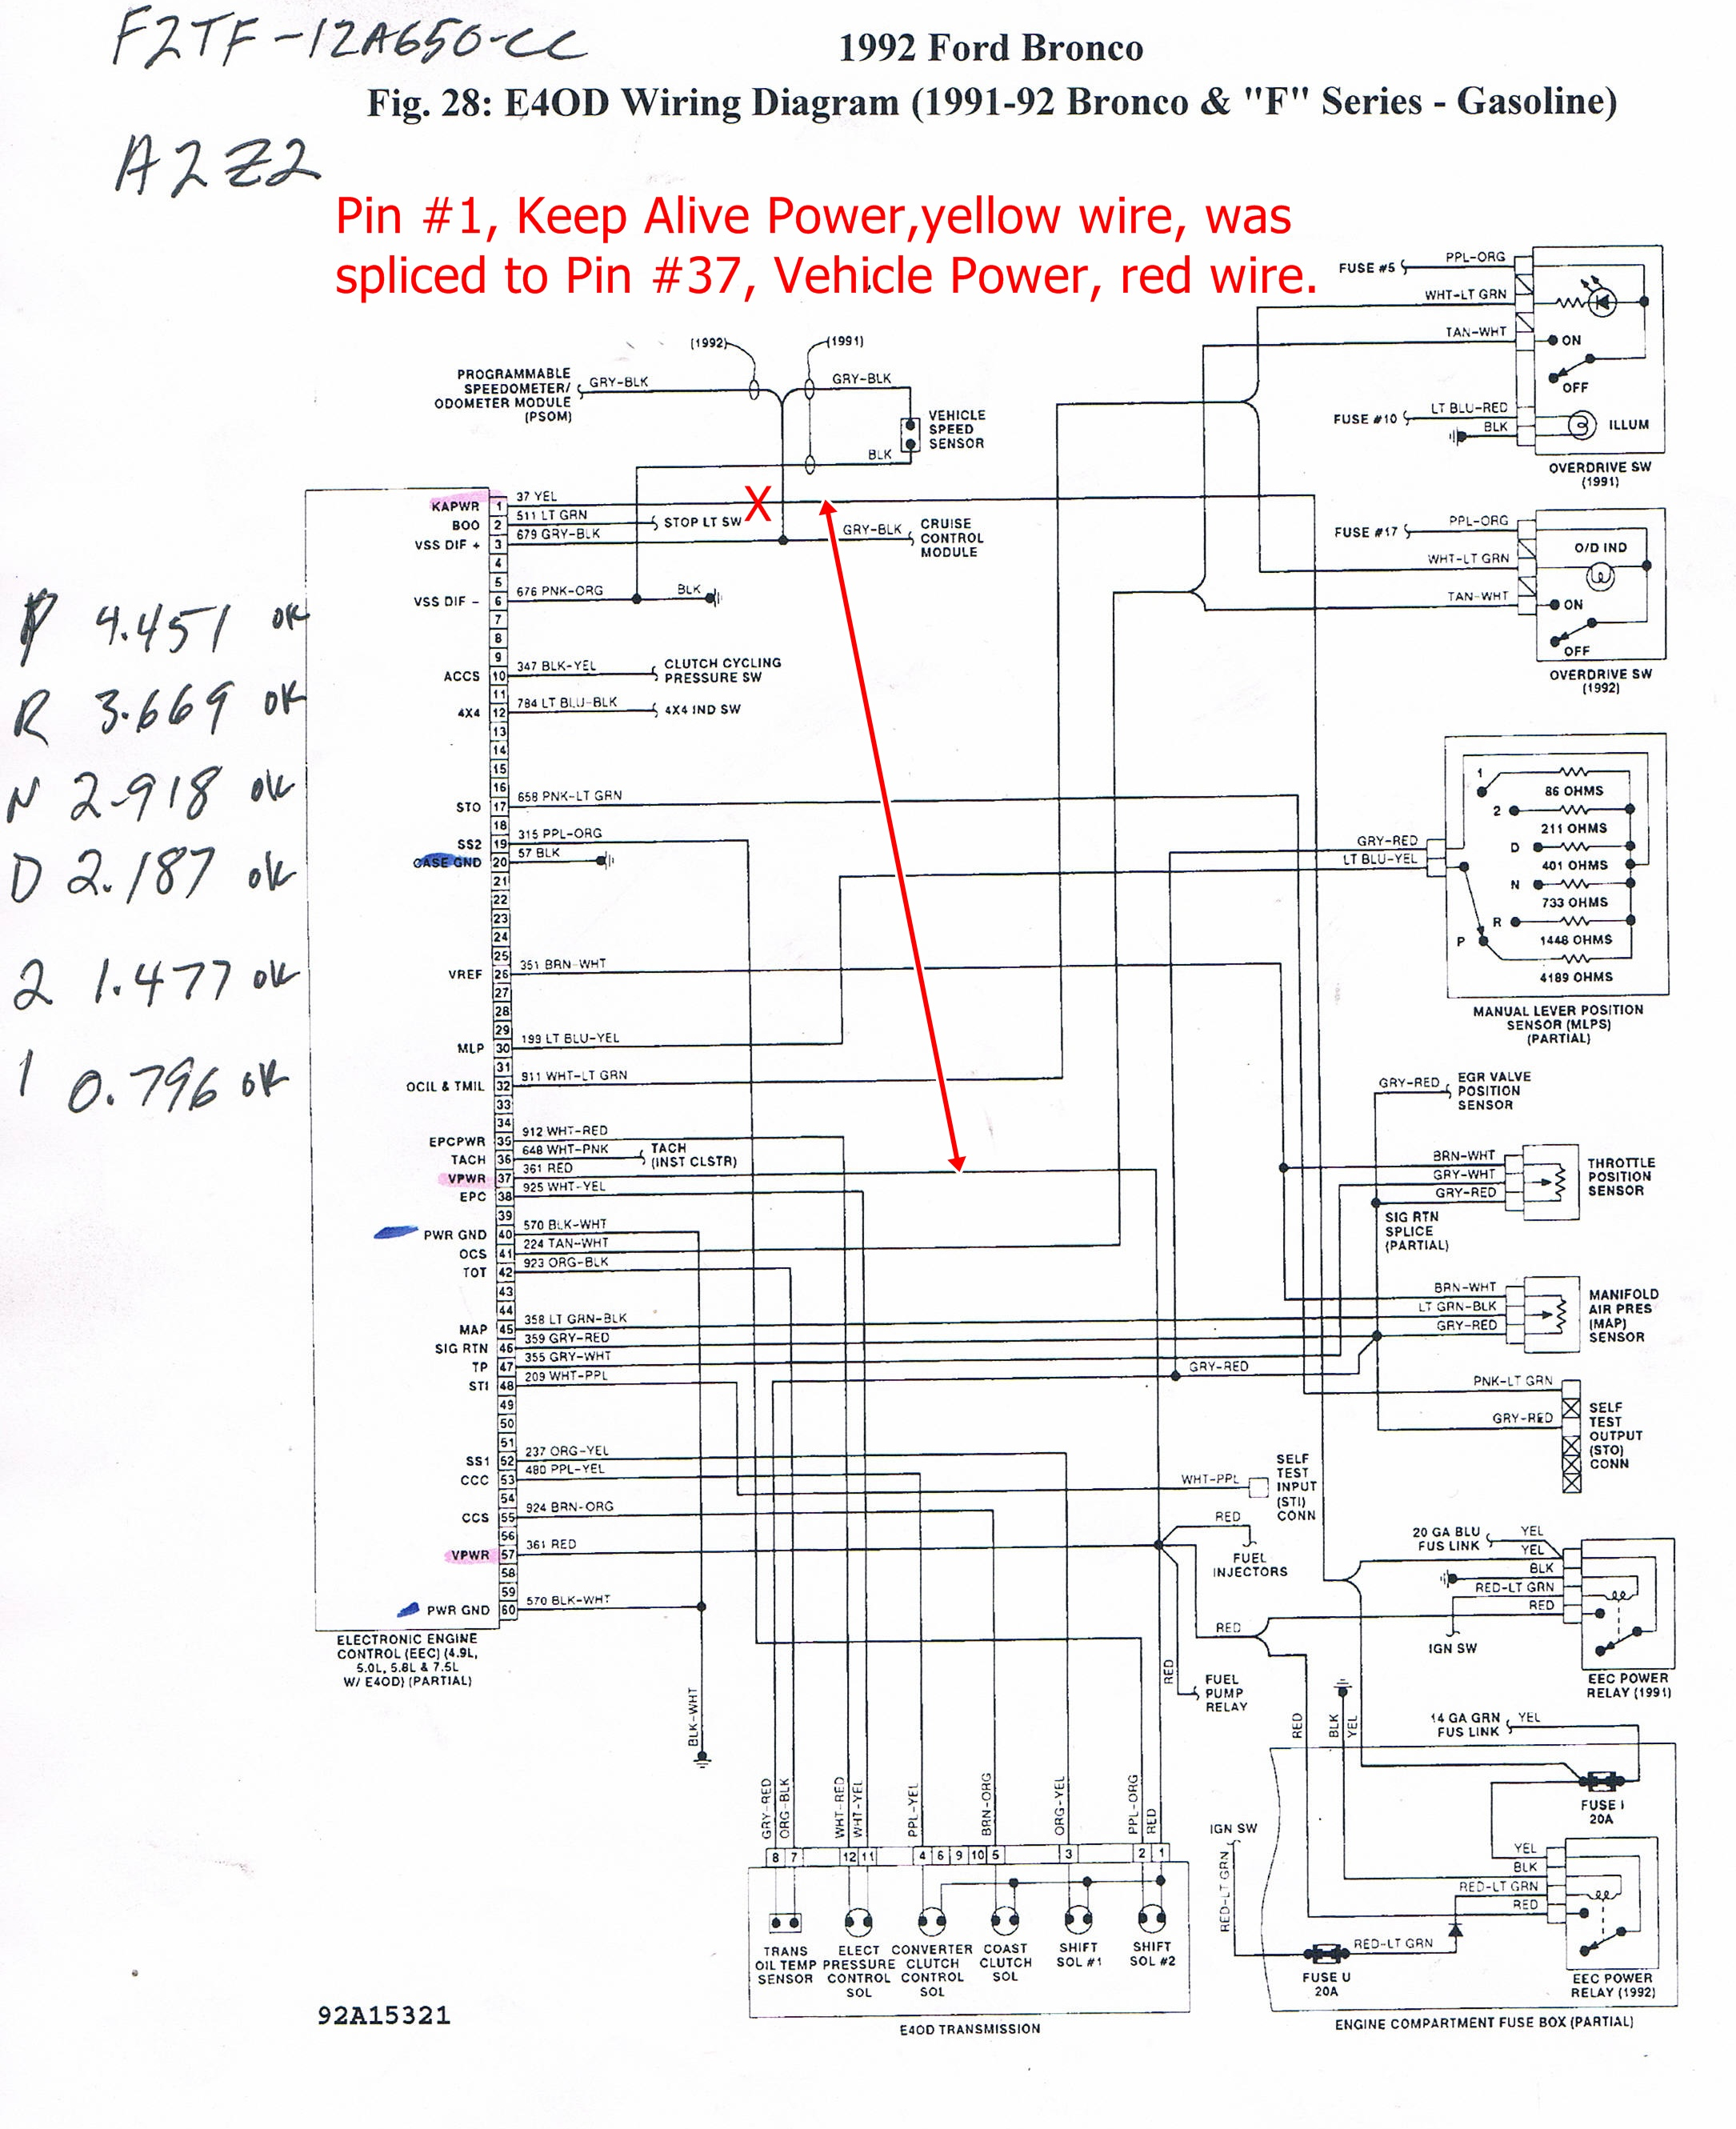 2005 gm ignition switch wiring diagram 851e87 2003 lexus es300 wiring diagram wiring resources  851e87 2003 lexus es300 wiring diagram